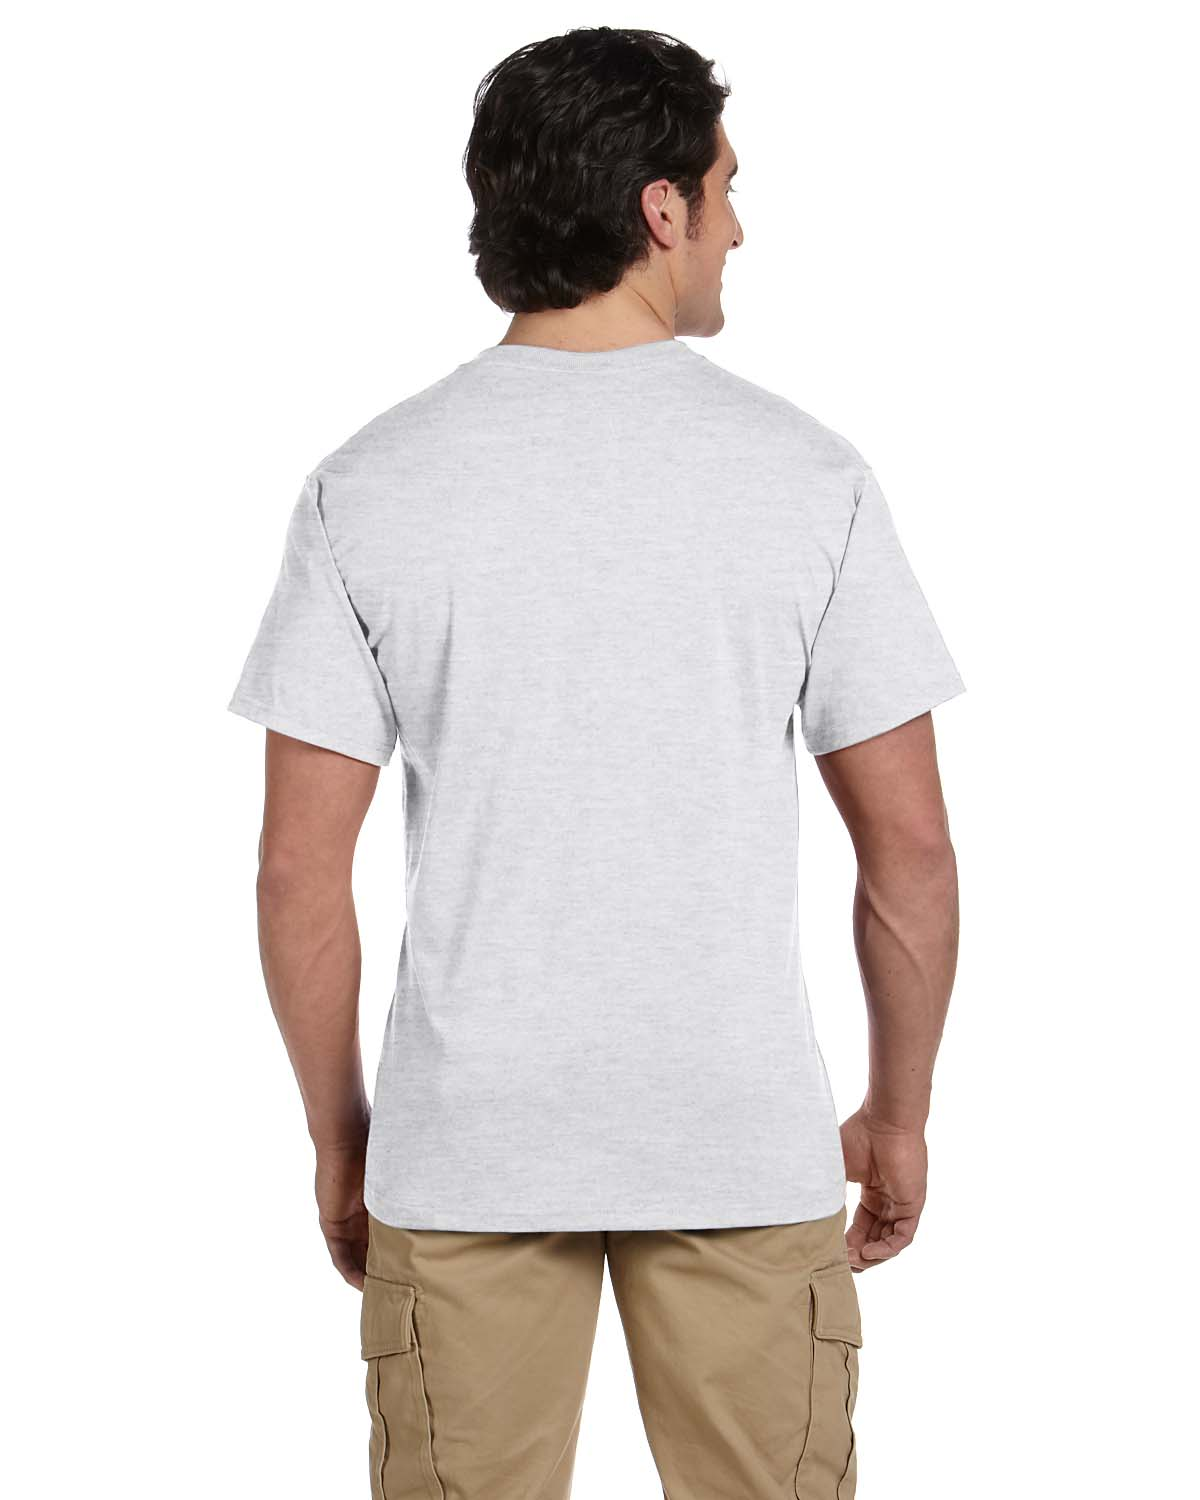 Jerzees mens heavyweight blend 50 50 t shirt with pocket for Men pocket t shirts